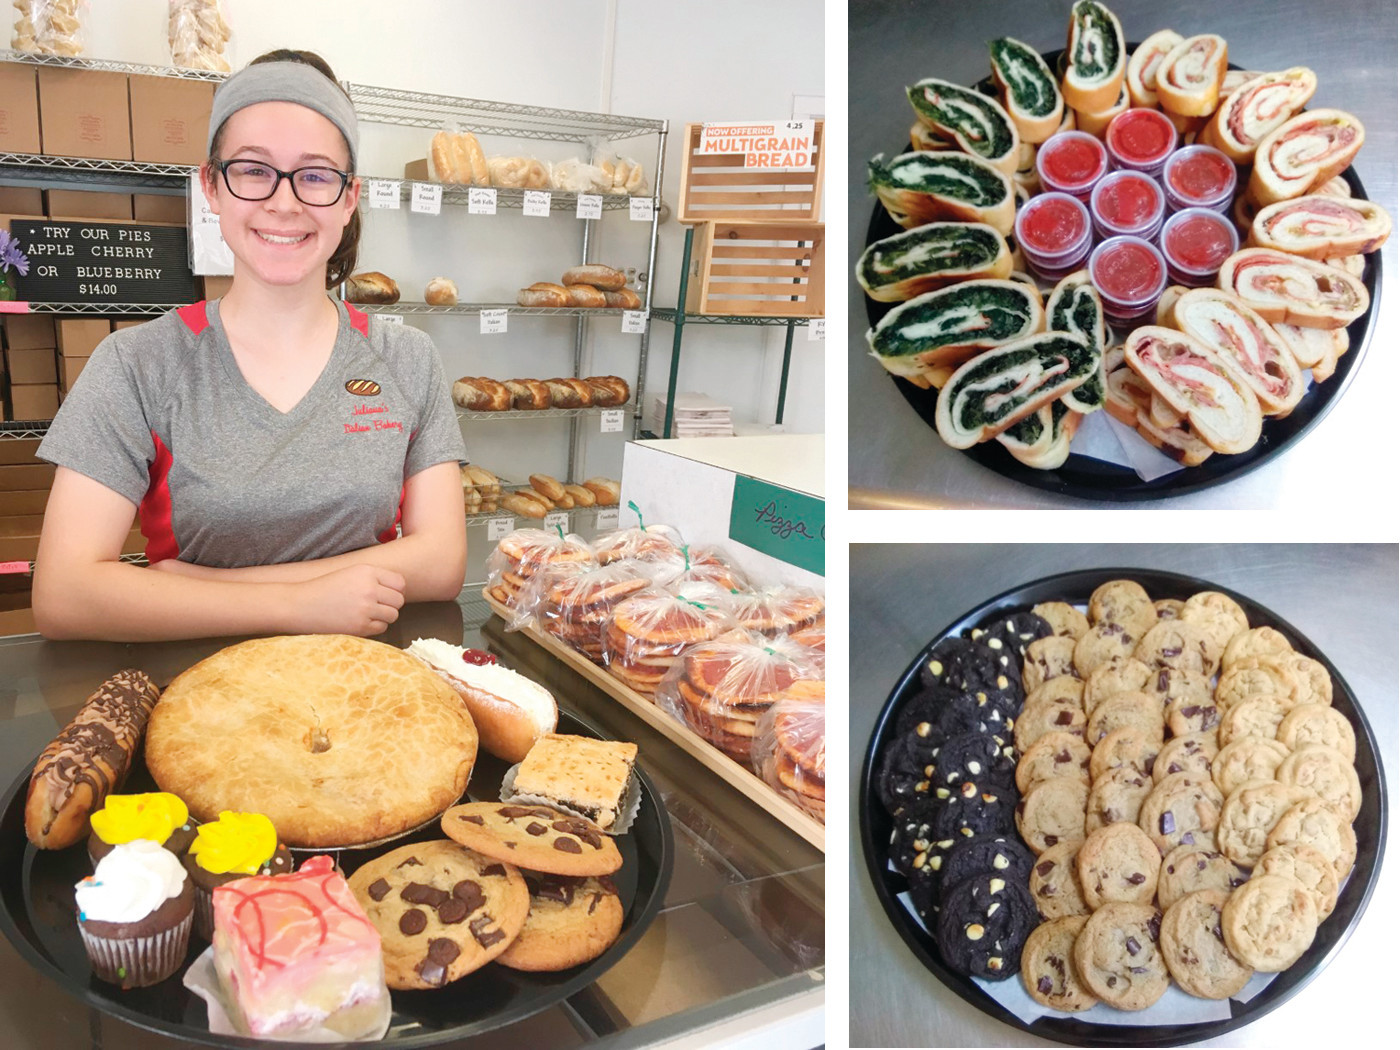 For all your celebrations this summer, avoid the hot kitchen and head over to Juliana's Italian Bakery for fresh baked goods ~ both sweet and savory.  You might even meet Juliana, the bakery's namesake!